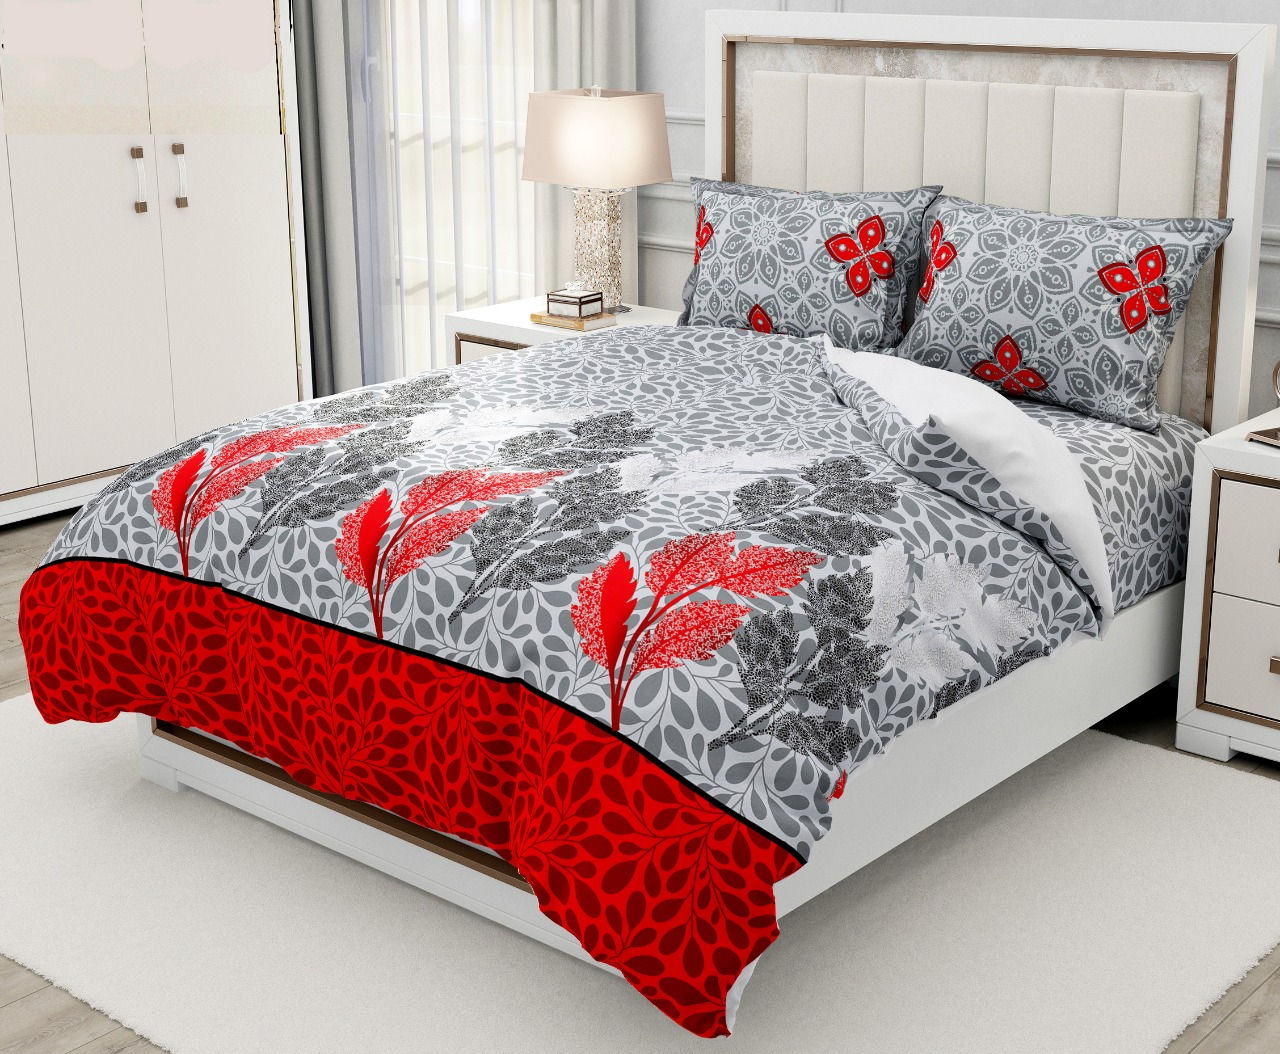 Kc Part 1 Presenting Hawaii Cotton King Size Bed Sheets Collection With Pillow Cover